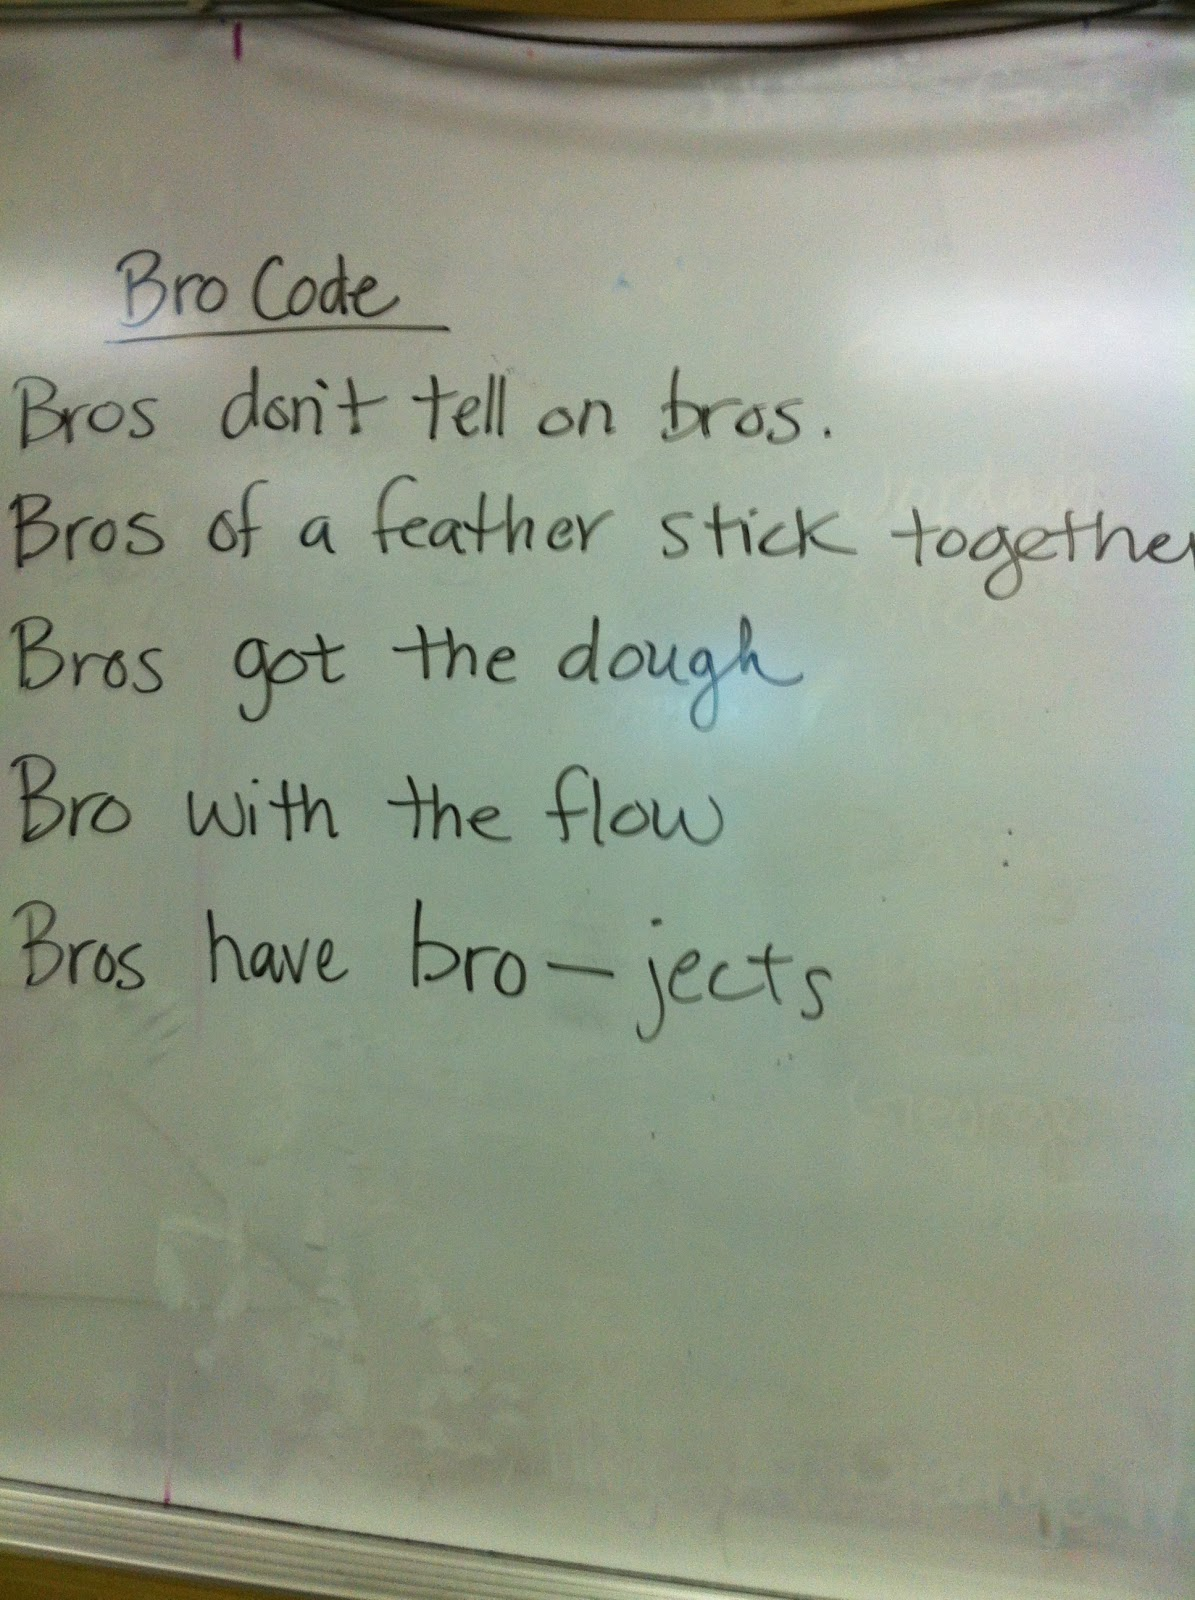 21 Rules You Need To Know About The Bro Code